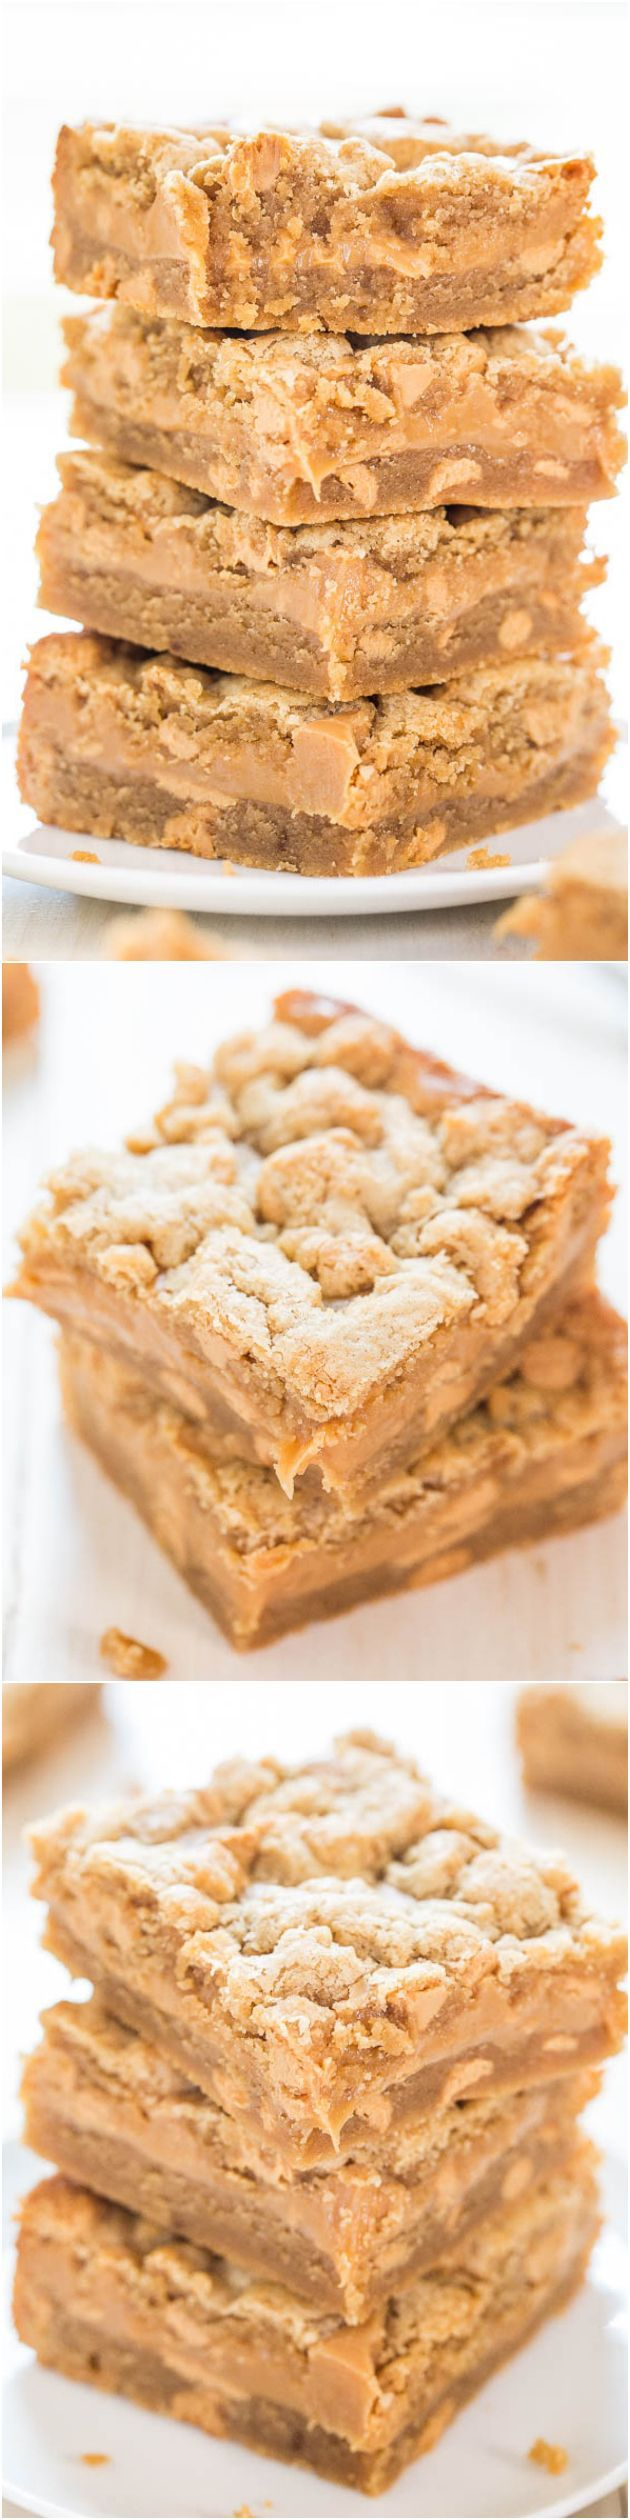 Peanut Butter Sandwich Cookie Bars - A creamy PB layer sandwiched between PB cookie dough